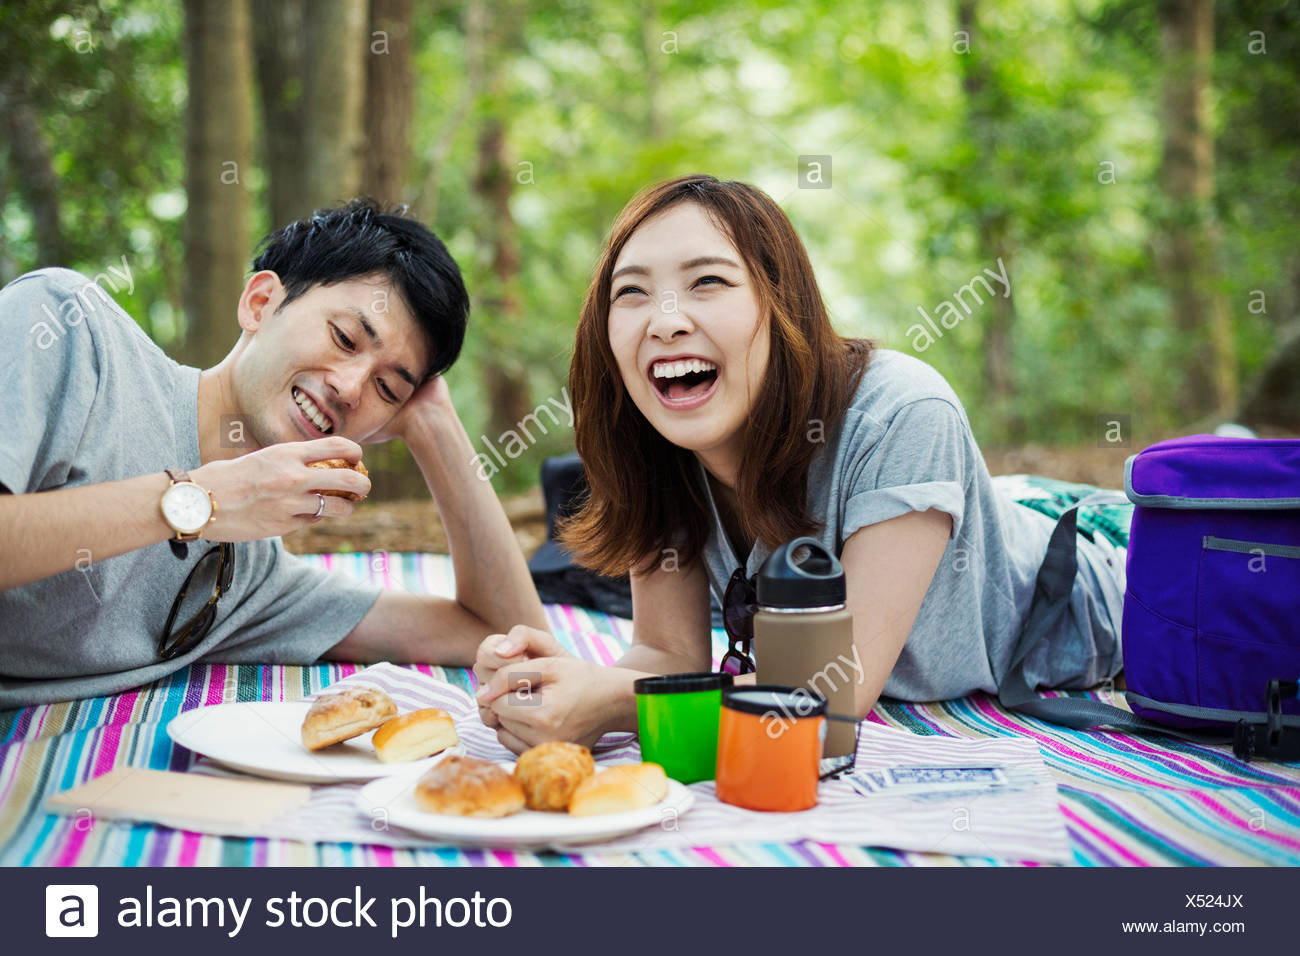 Young woman and man having a picnic in a forest. - Stock Image